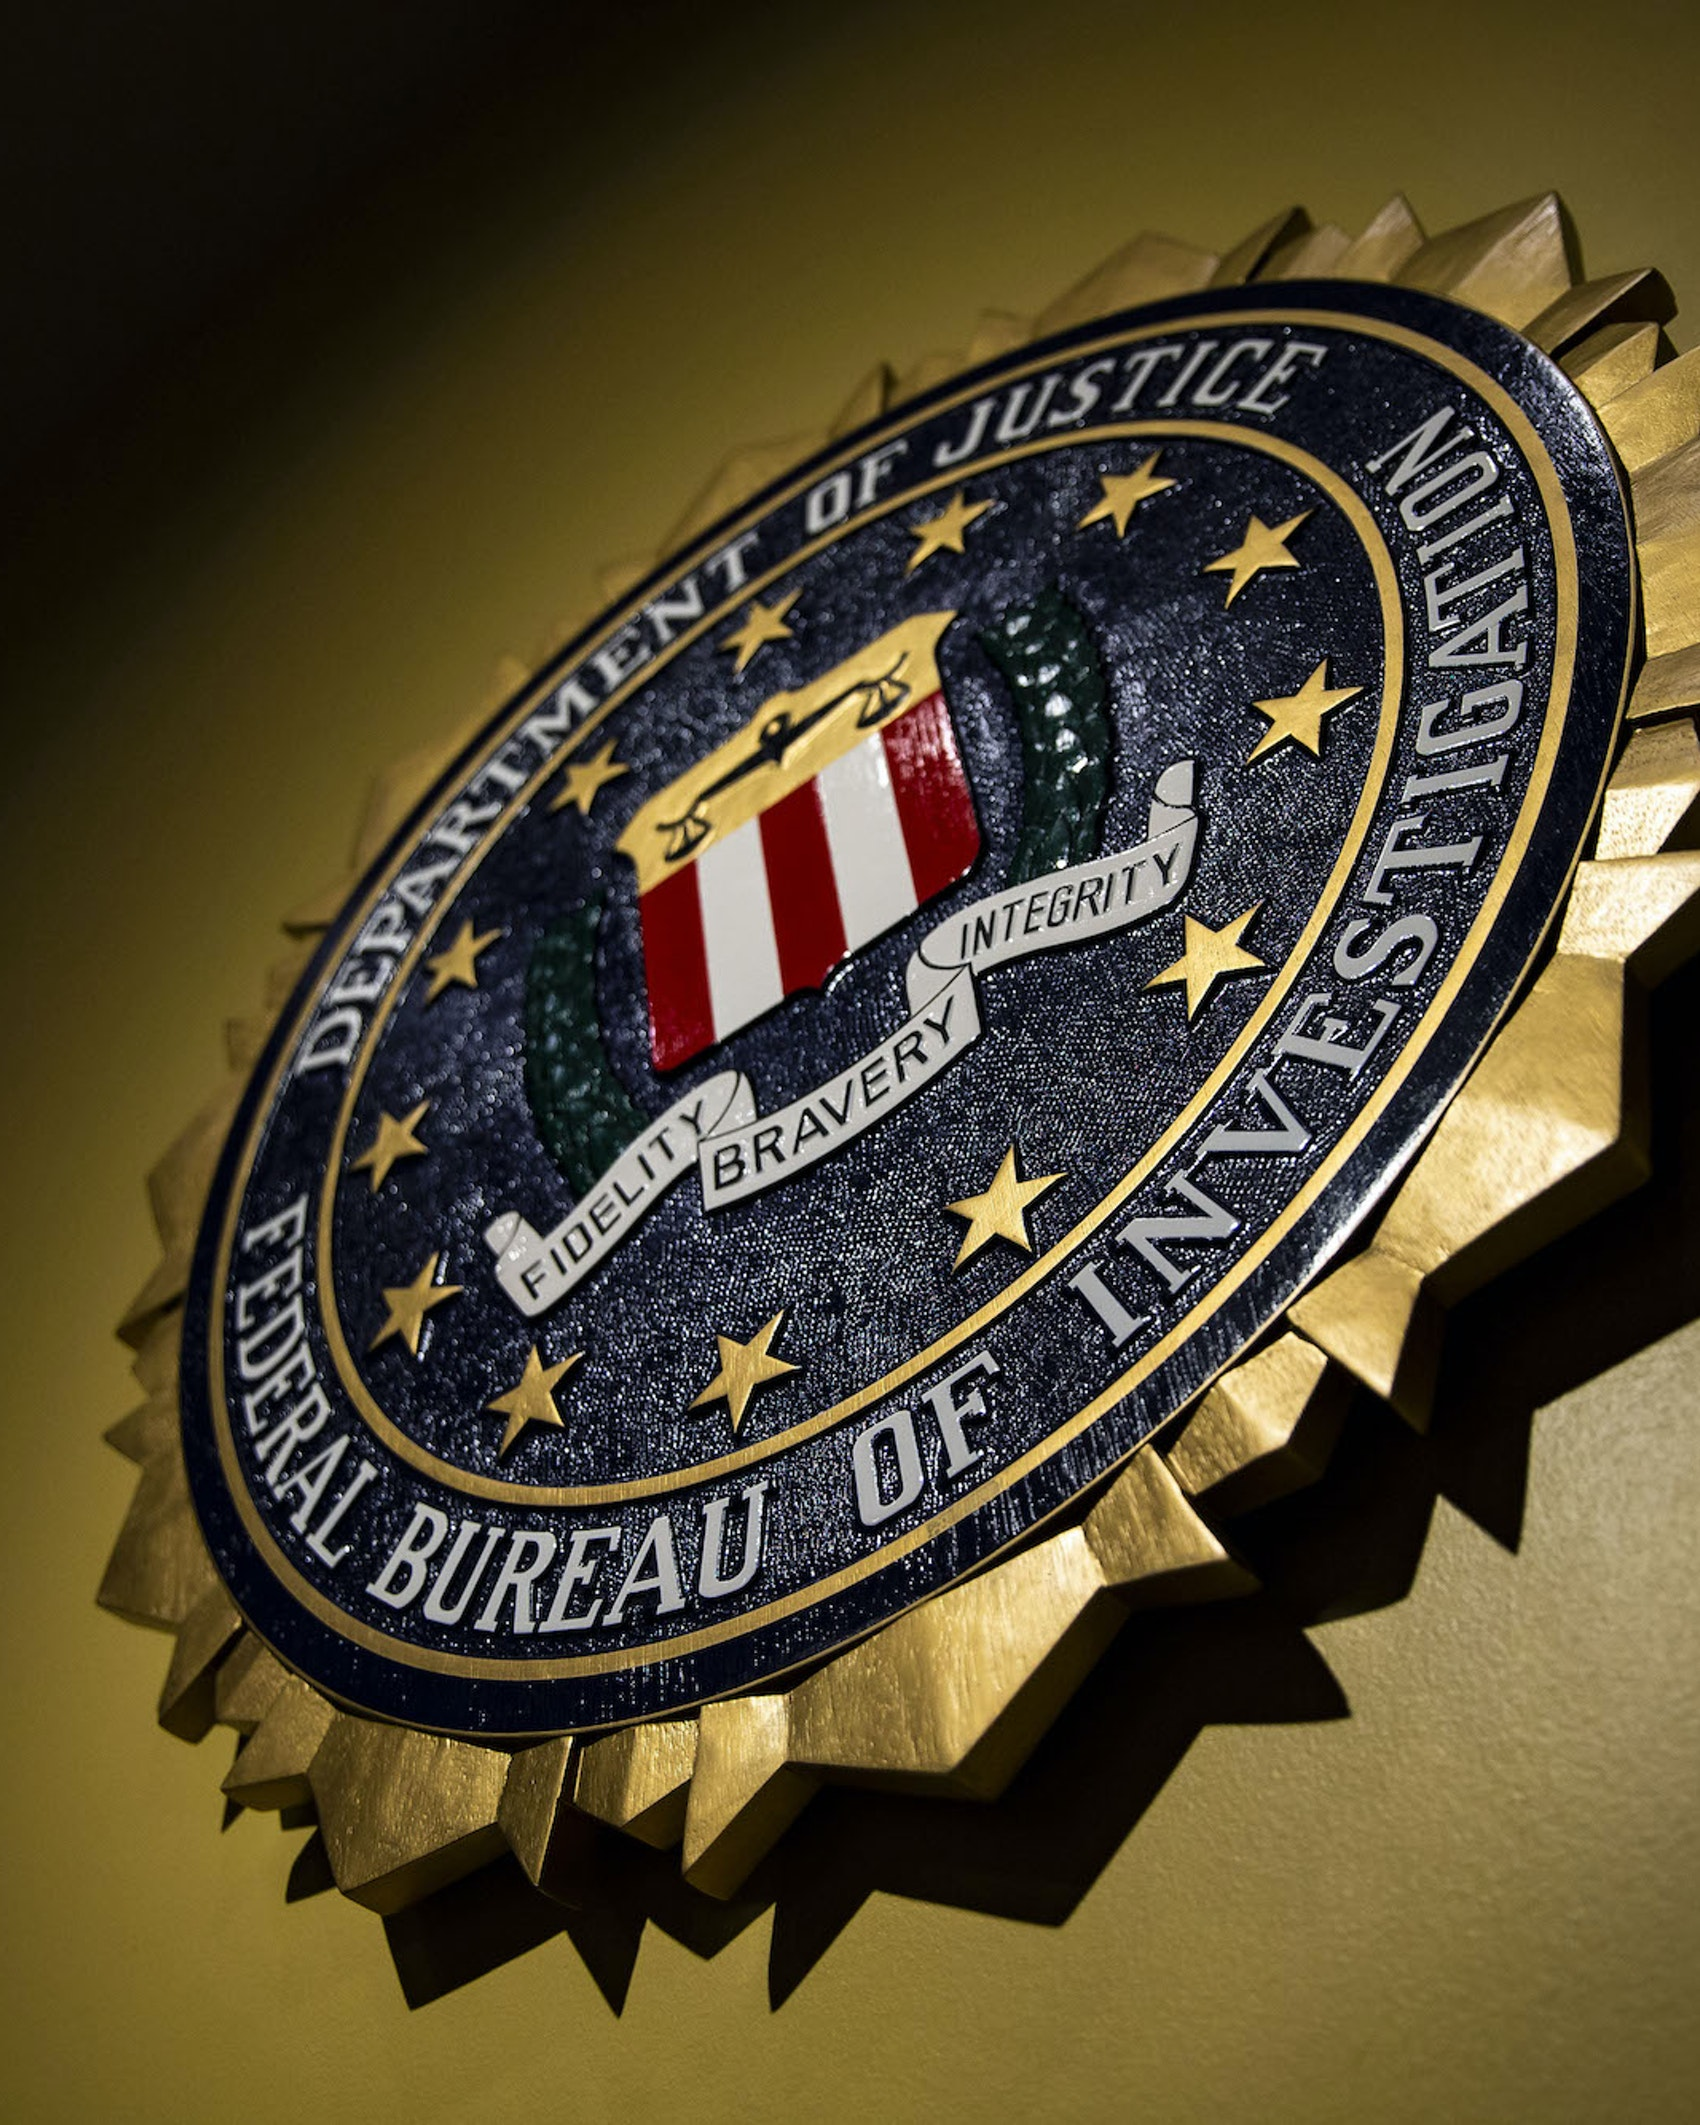 The seal of the Federal Bureau of Investigation (FBI) hangs on a wall before a news conference at the FBI headquarters in Washington, D.C.